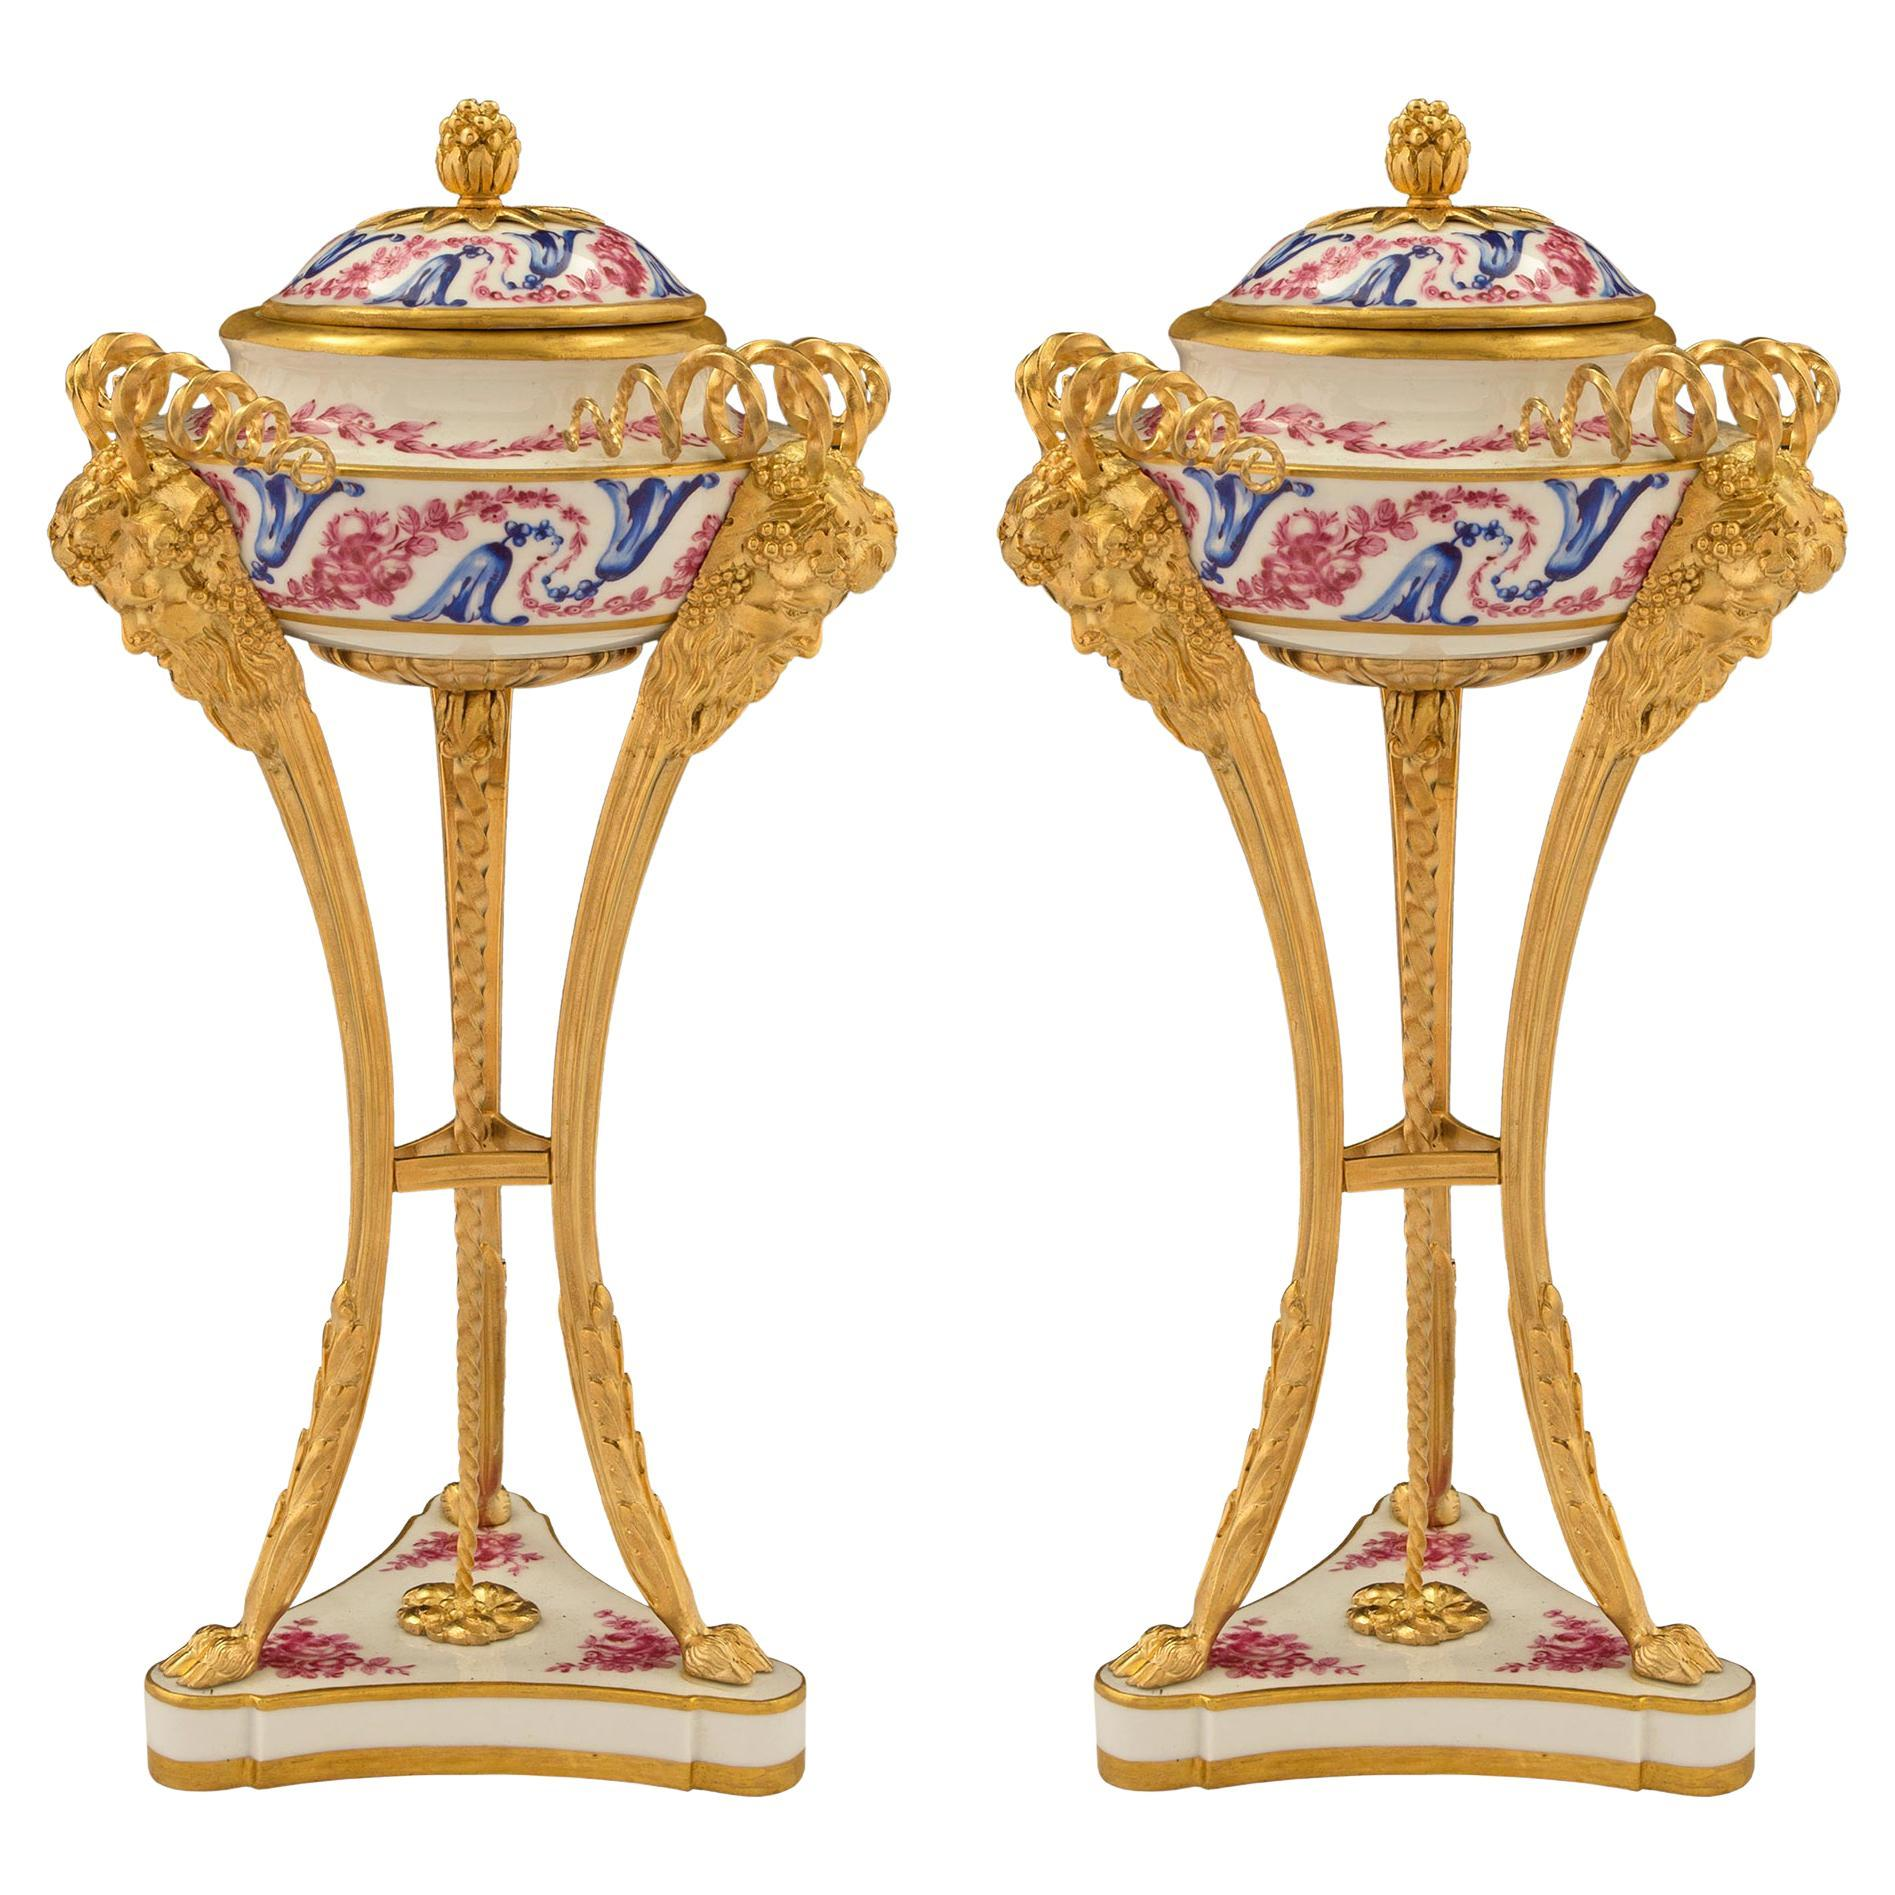 Pair of French 19th Century Louis XVI St. Sèvres Porcelain and Ormolu Lidded Urn